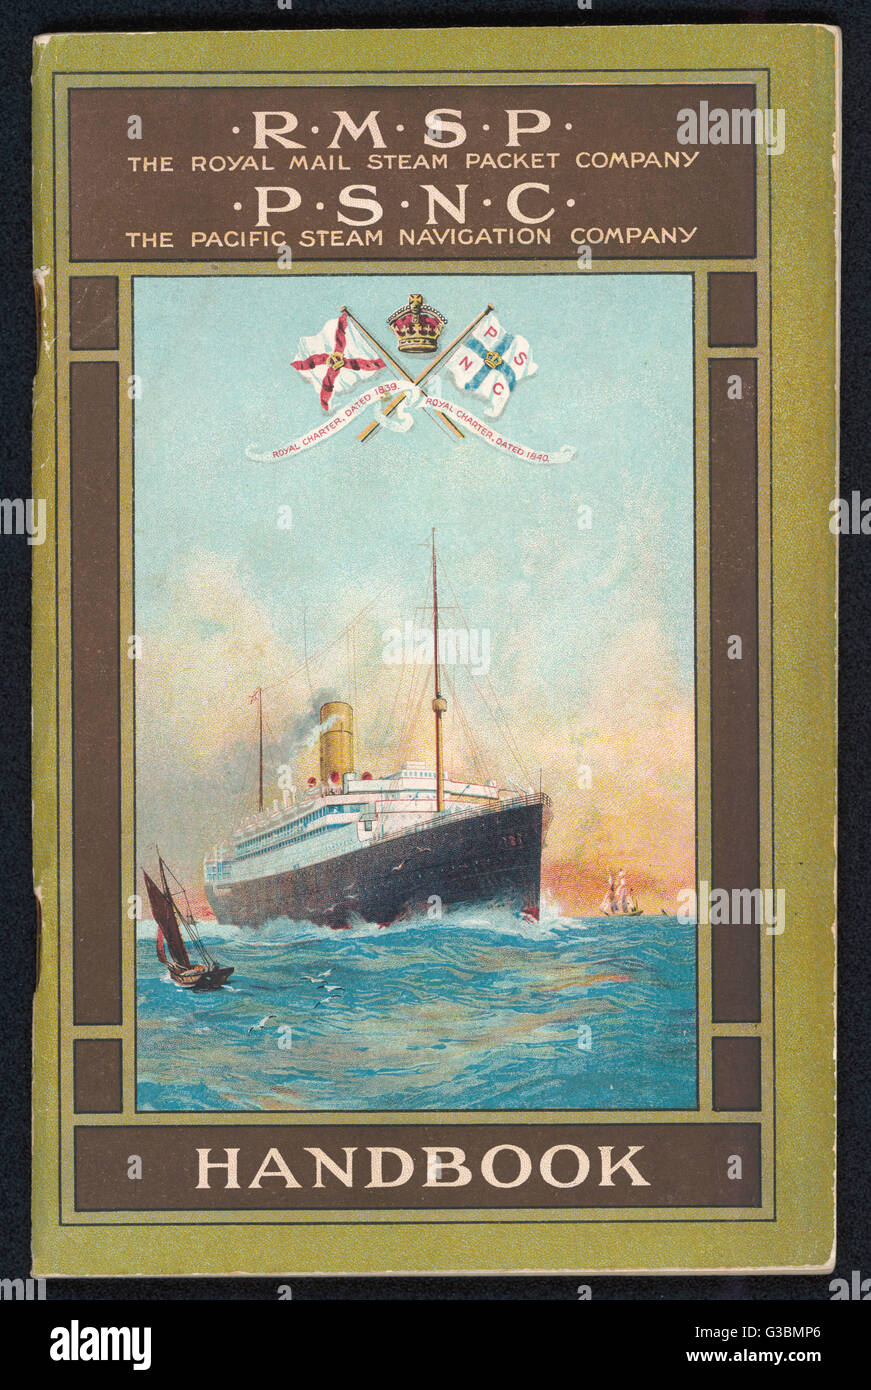 Brochure for the Royal  Mail Steam Packet Company and  the Pacific Steam Navigation  Company.       Date: 1912 - Stock Image